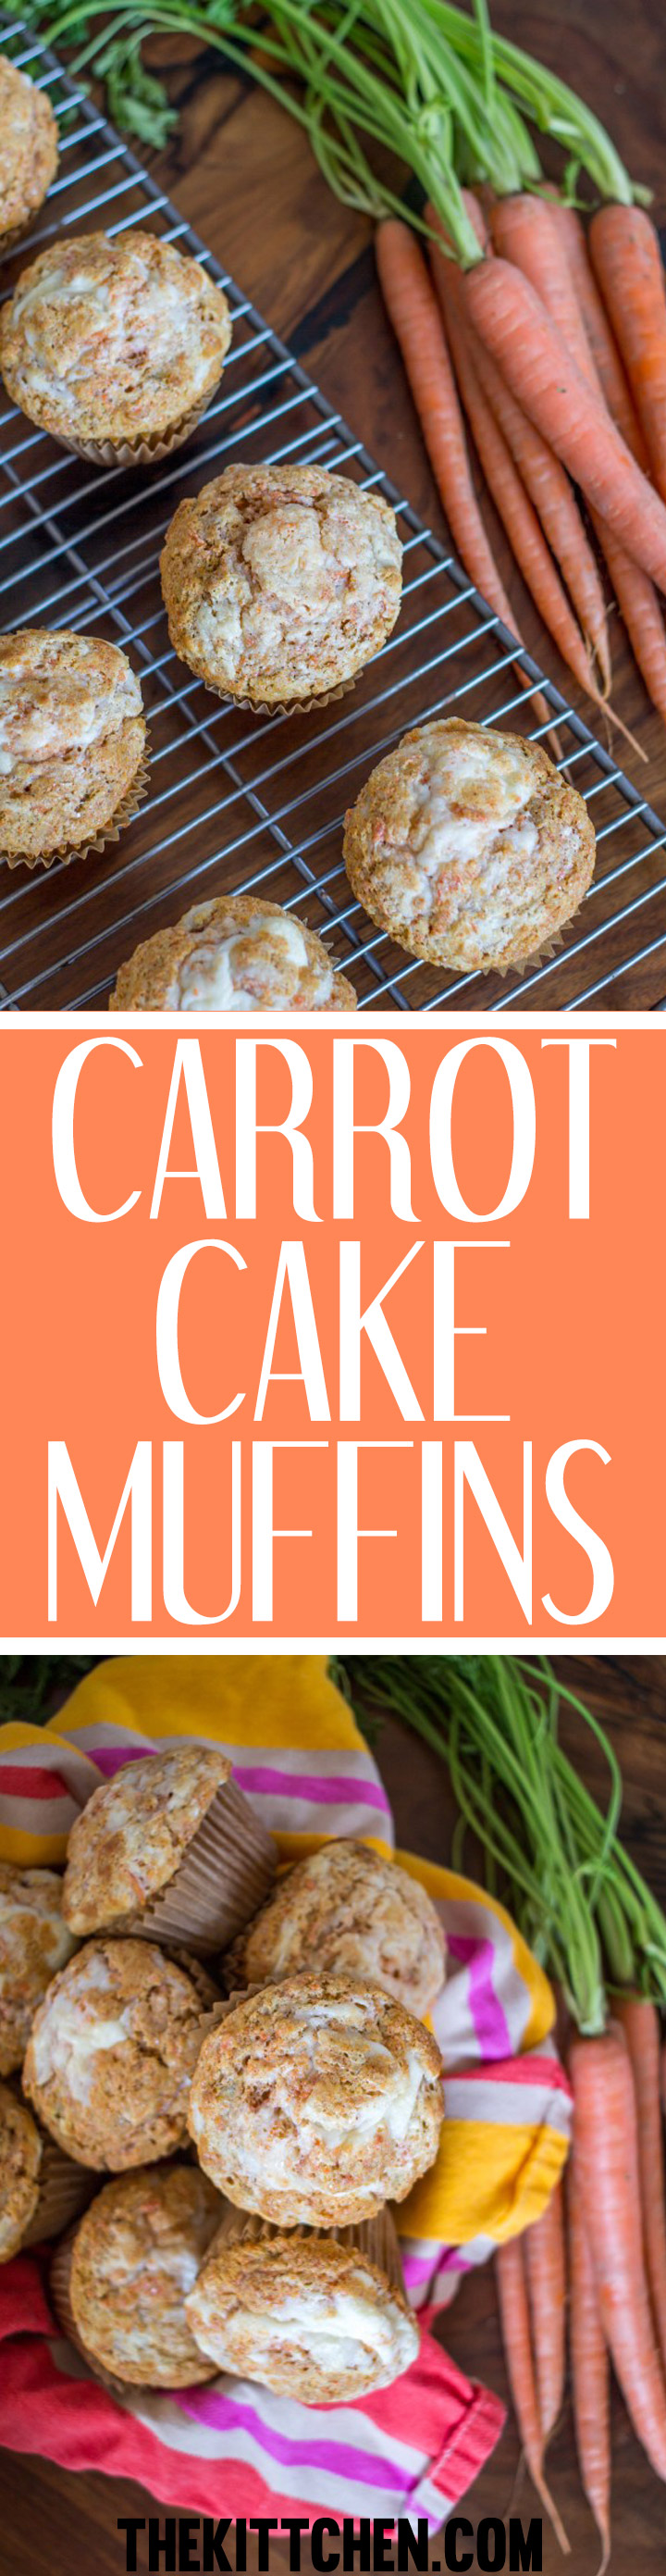 These carrot cake muffins are made with plenty of carrot seasoned with cinnamon, vanilla, and a touch of nutmeg. The finishing touch is adding a swirl of sweetened cream cheese on the top of the cupcakes before cupcakes go in the oven to bake. This is a recipe that you will make again and again!